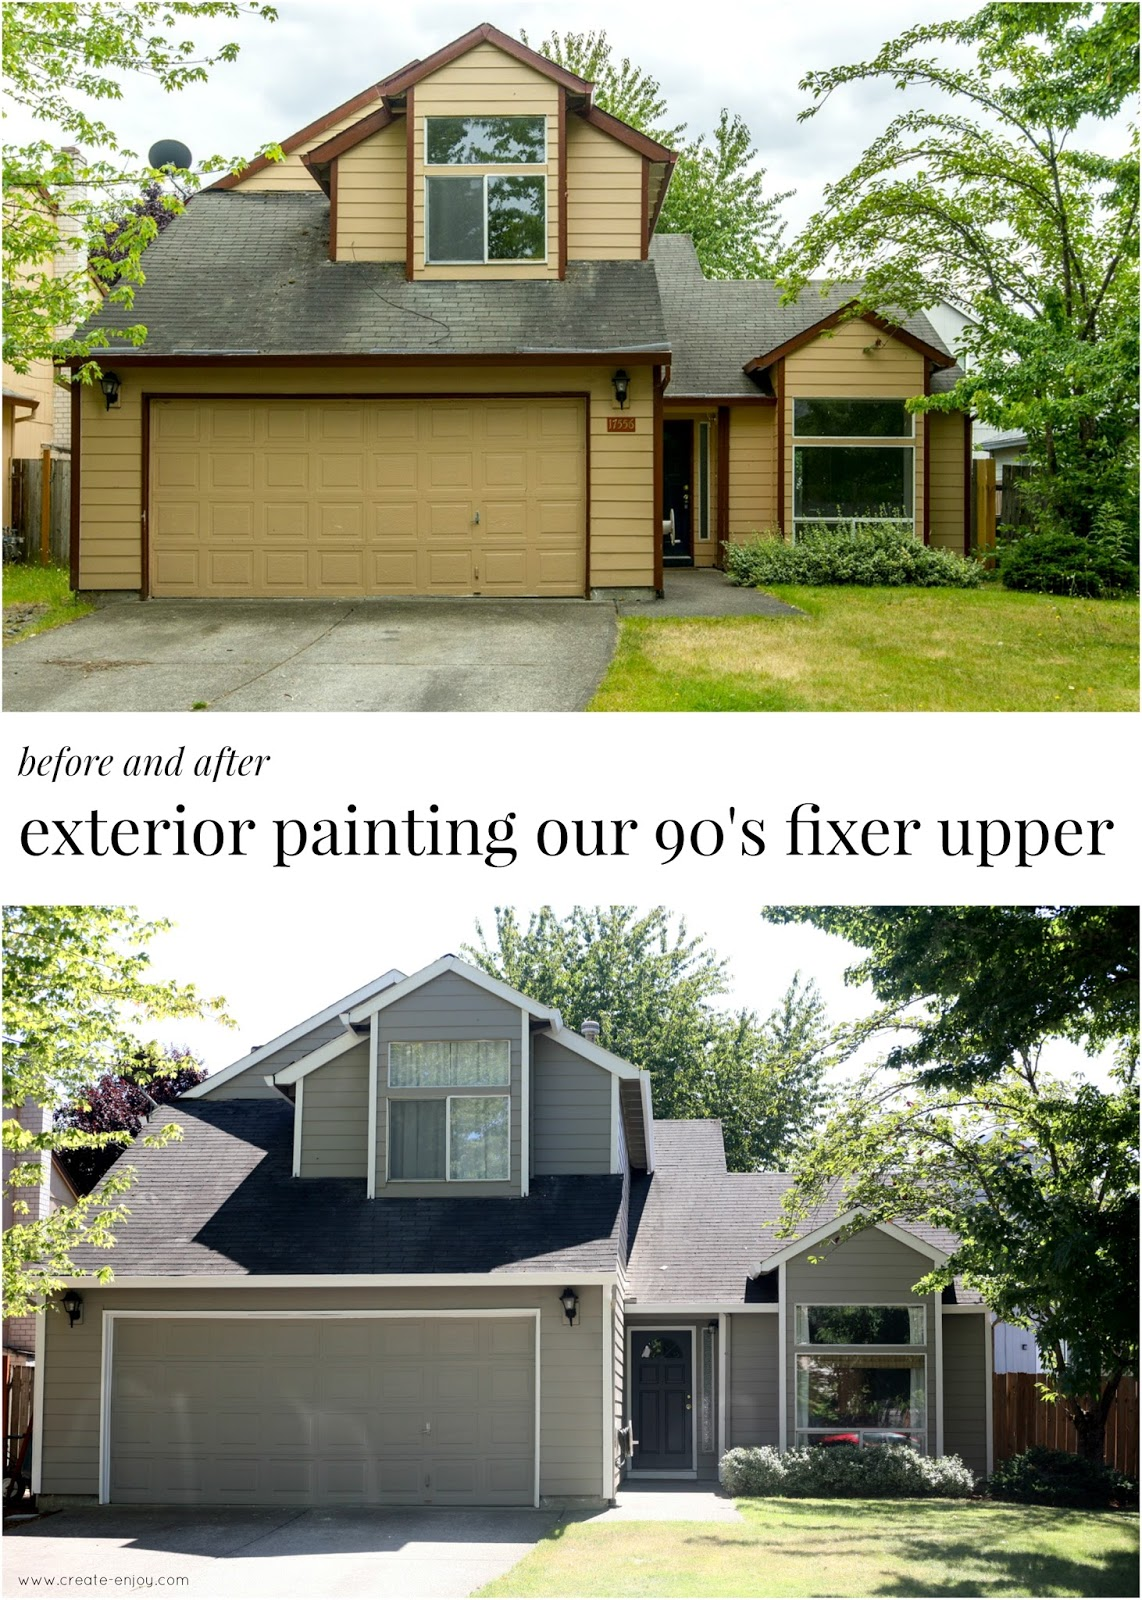 Terrific update home exterior images best idea home for 90s house exterior